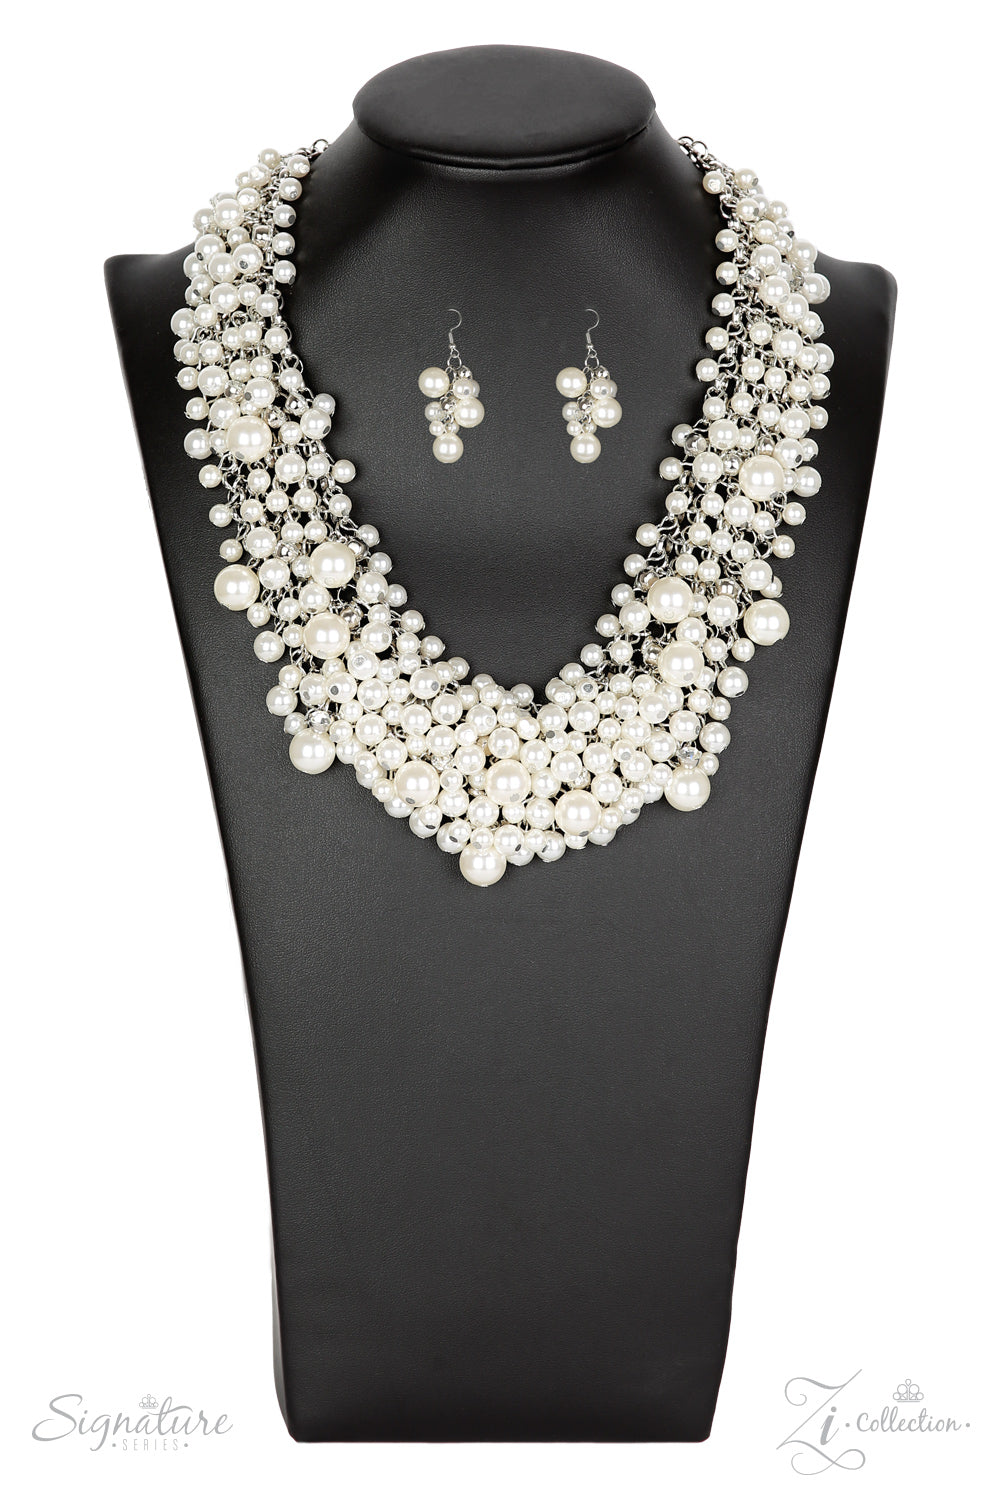 Signature Zi Collection The Tracey - Paparazzi Necklace - Be Adored Jewelry